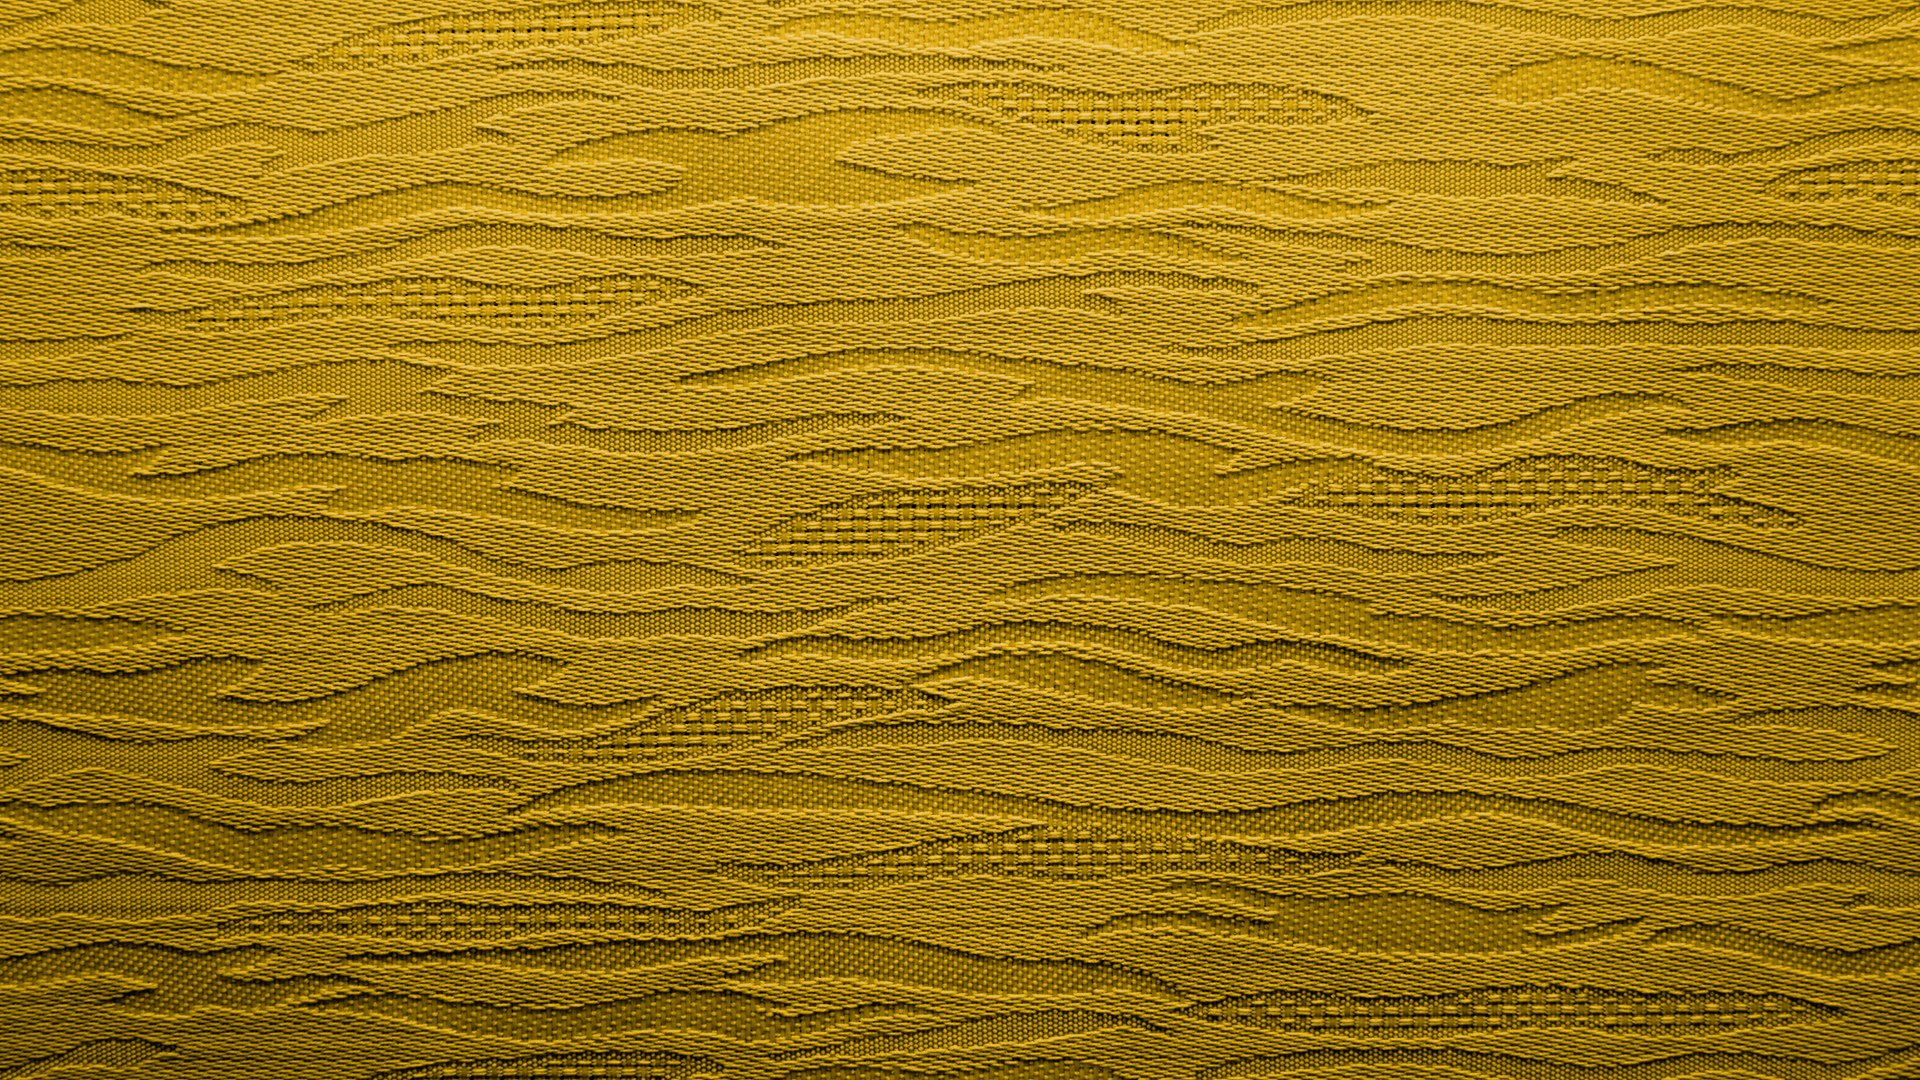 Yellow Fabric Background With Waves HD 1920 x 1080p